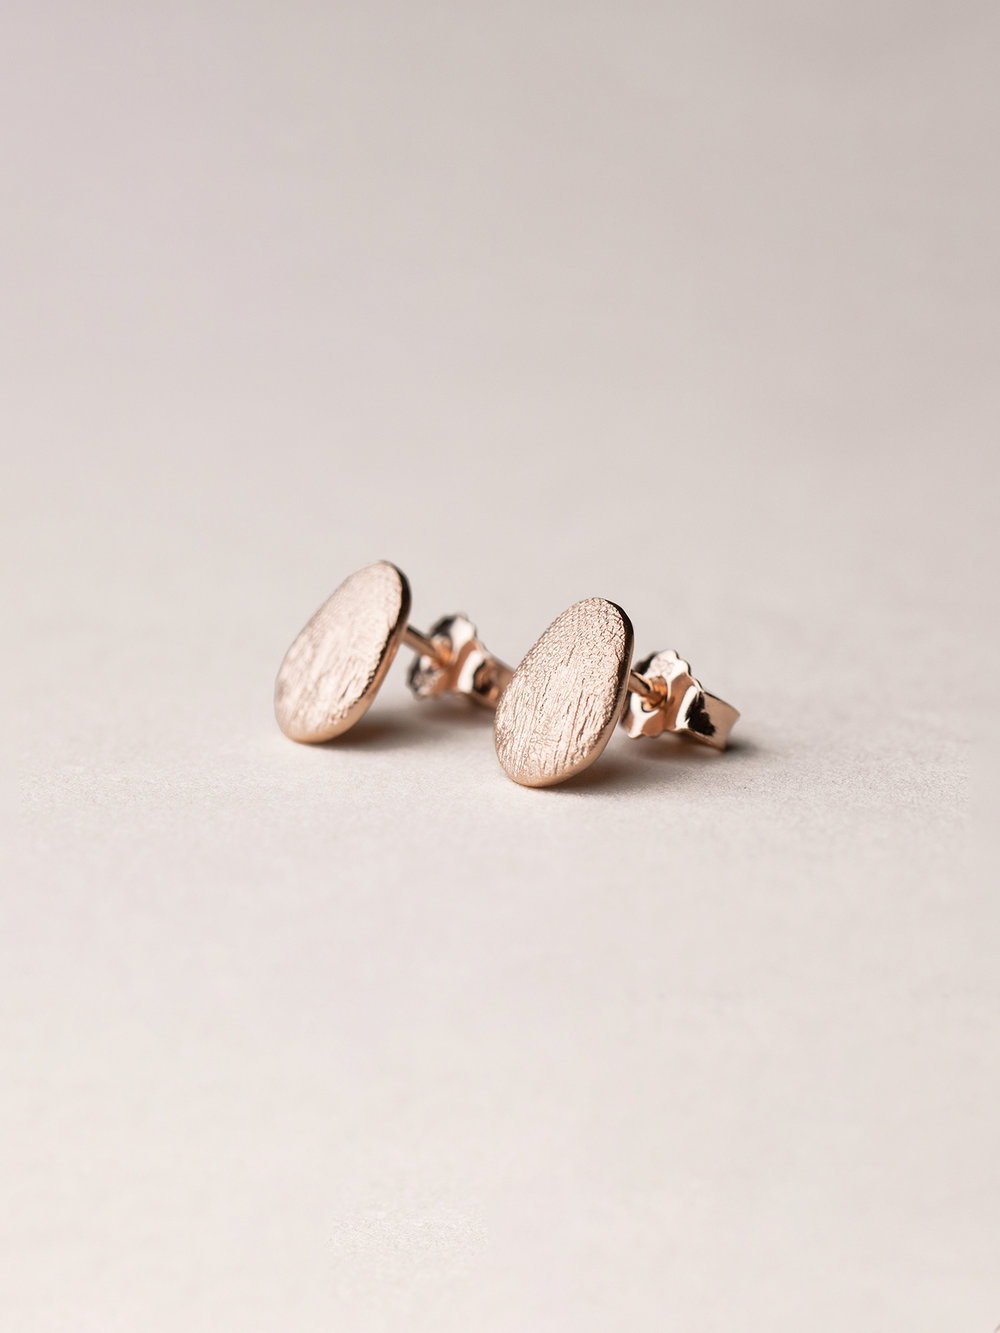 Ovale Amia-Ohrstecker in Silber, rosevergoldet  Amia, oval stud earrings in rosegoldplated silver